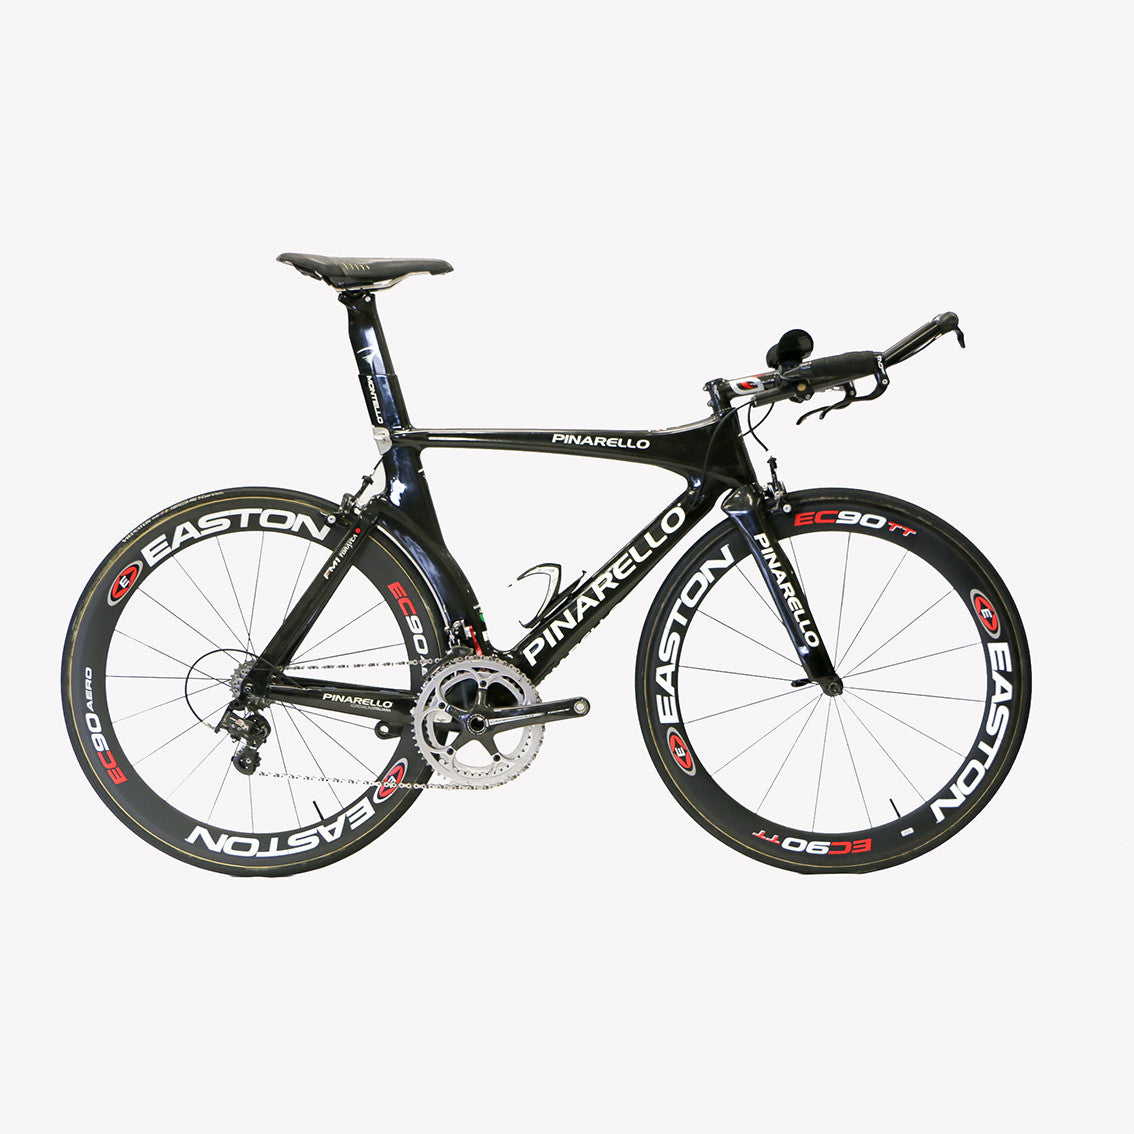 PINARELLO MONTELLO CAMPAGNOLO RECORD 11sp BIKE (PRICE